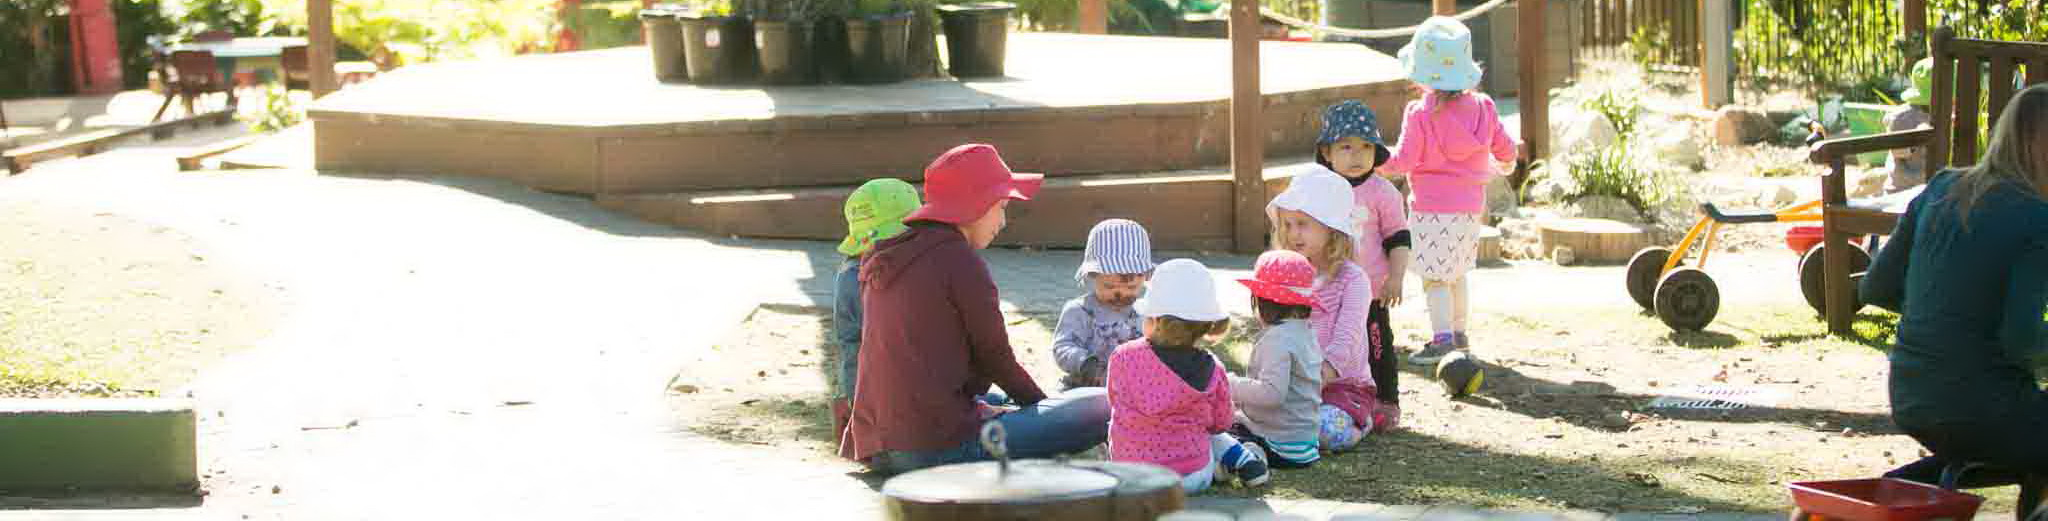 Uniting Early Education Centre at Toowong